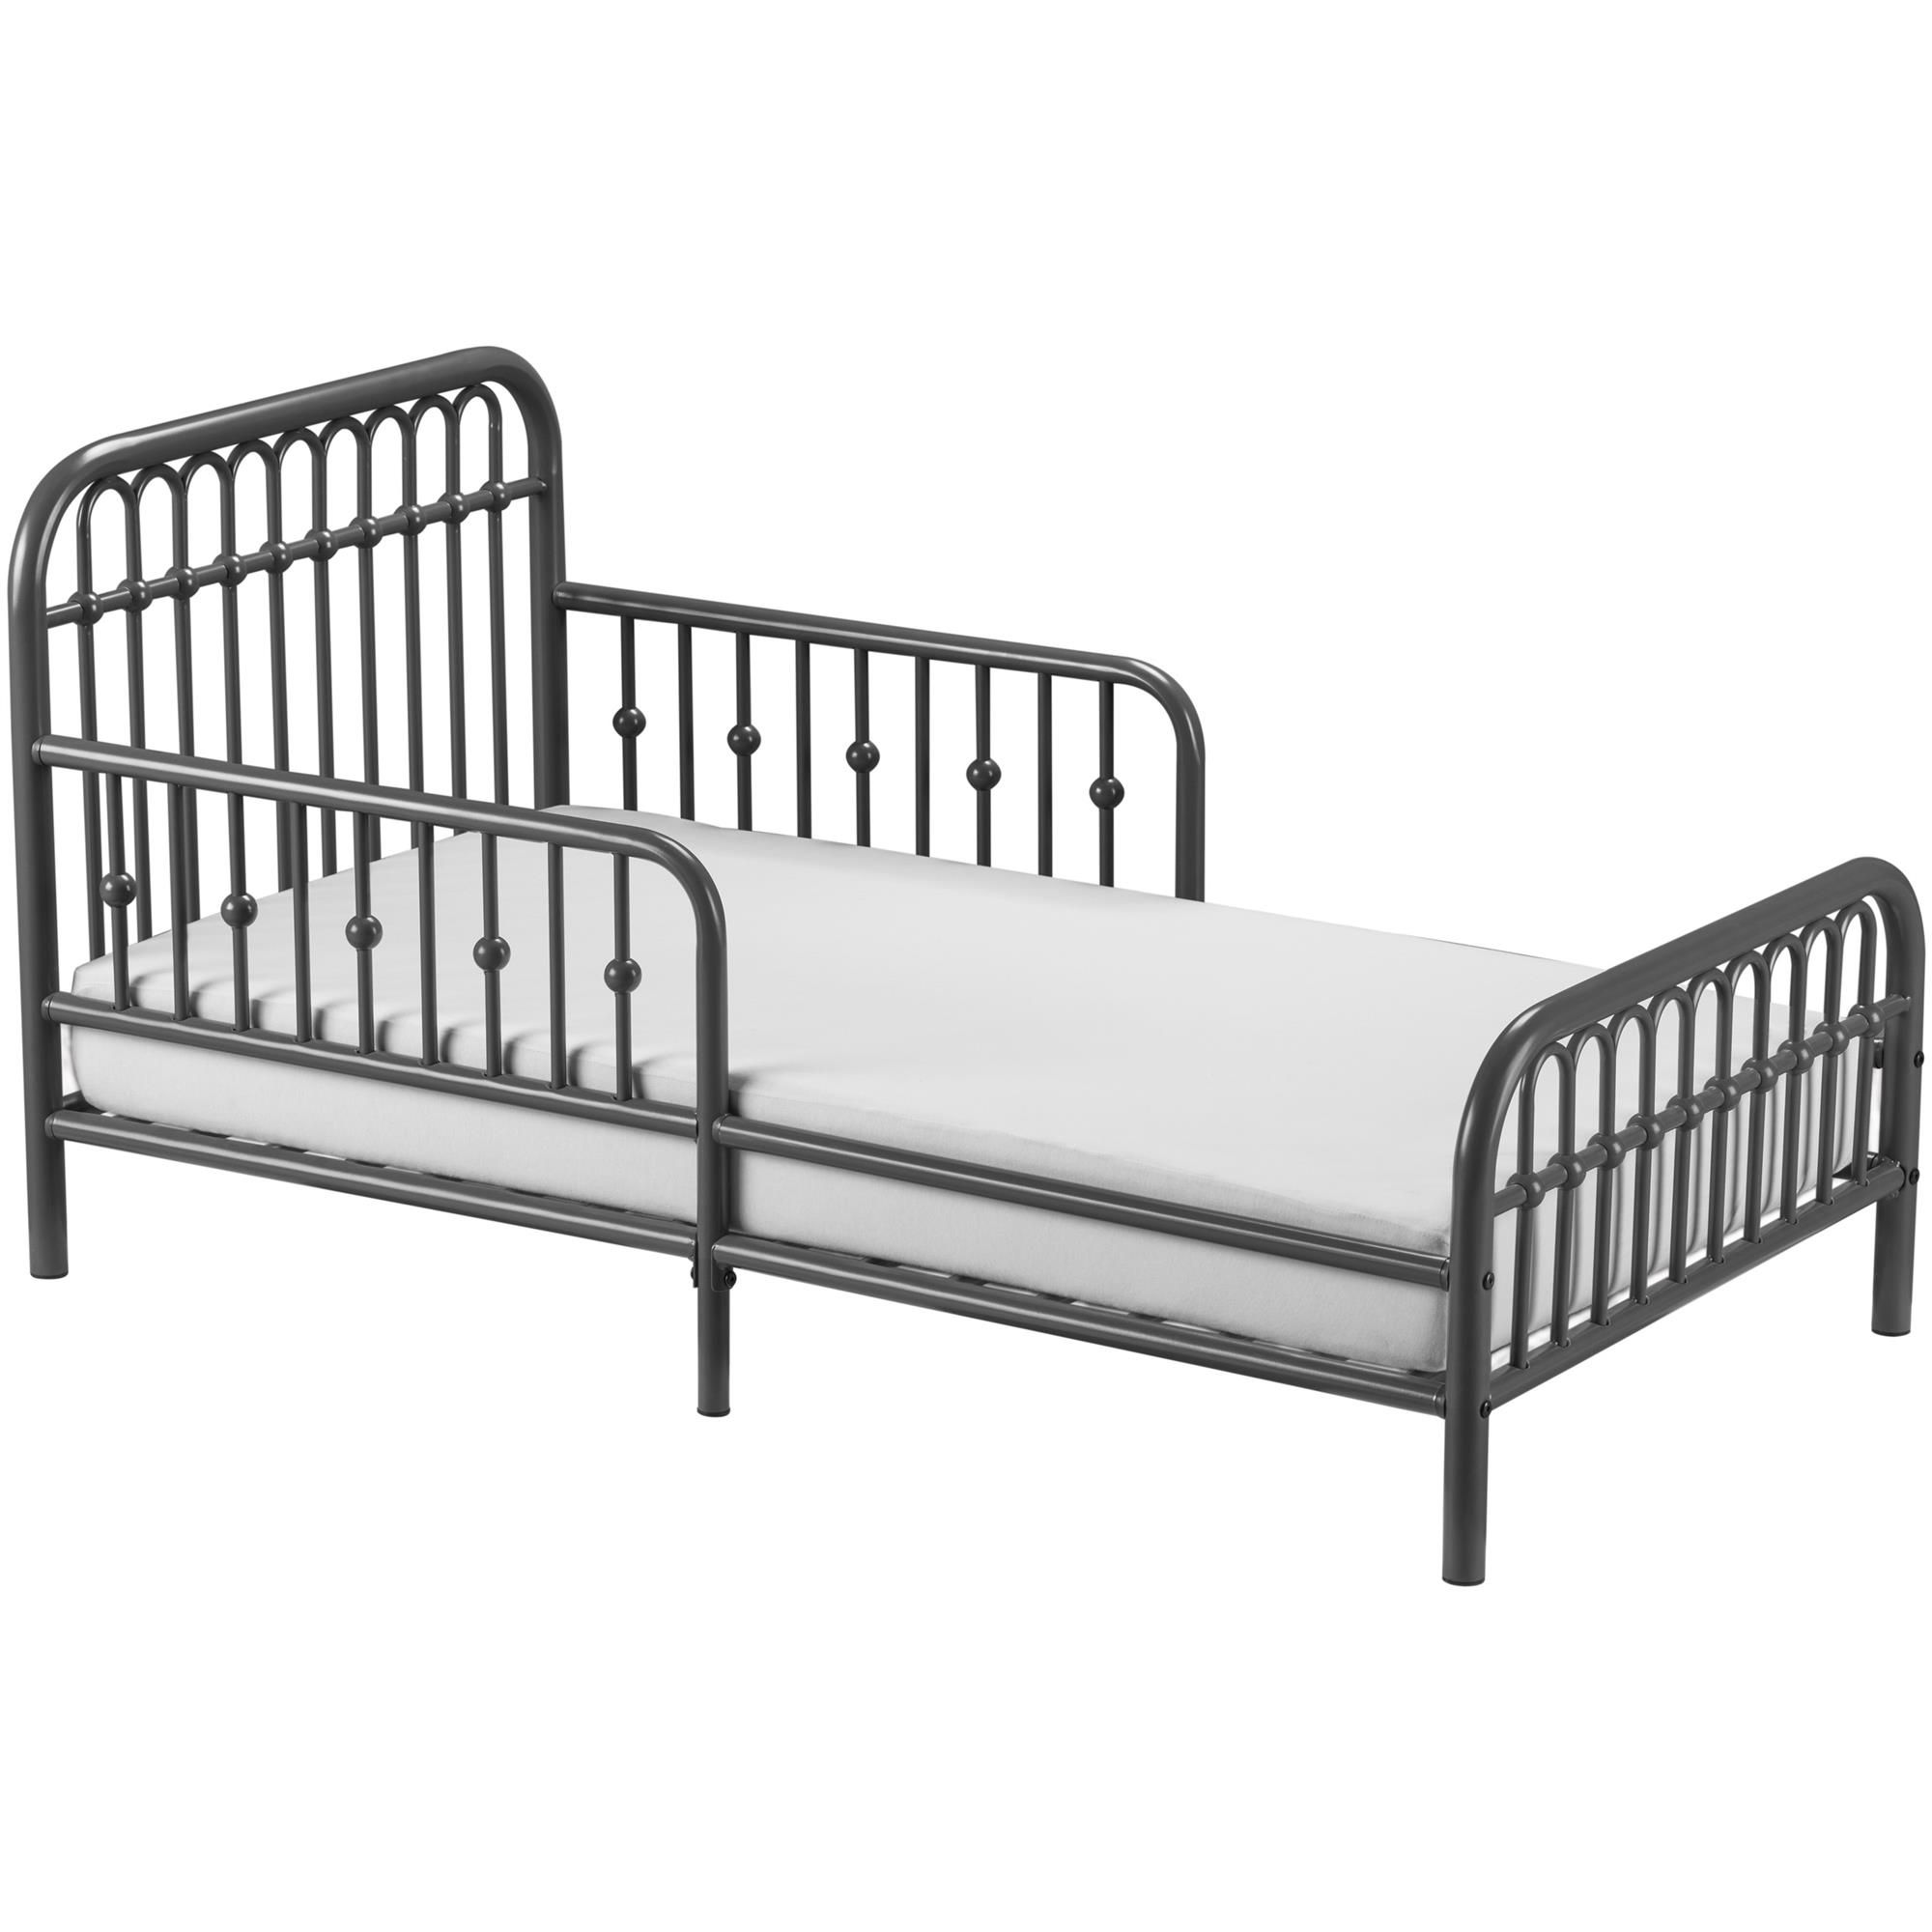 Baby Toddler Bed Grey Bedding Metal Daybed With Trundle